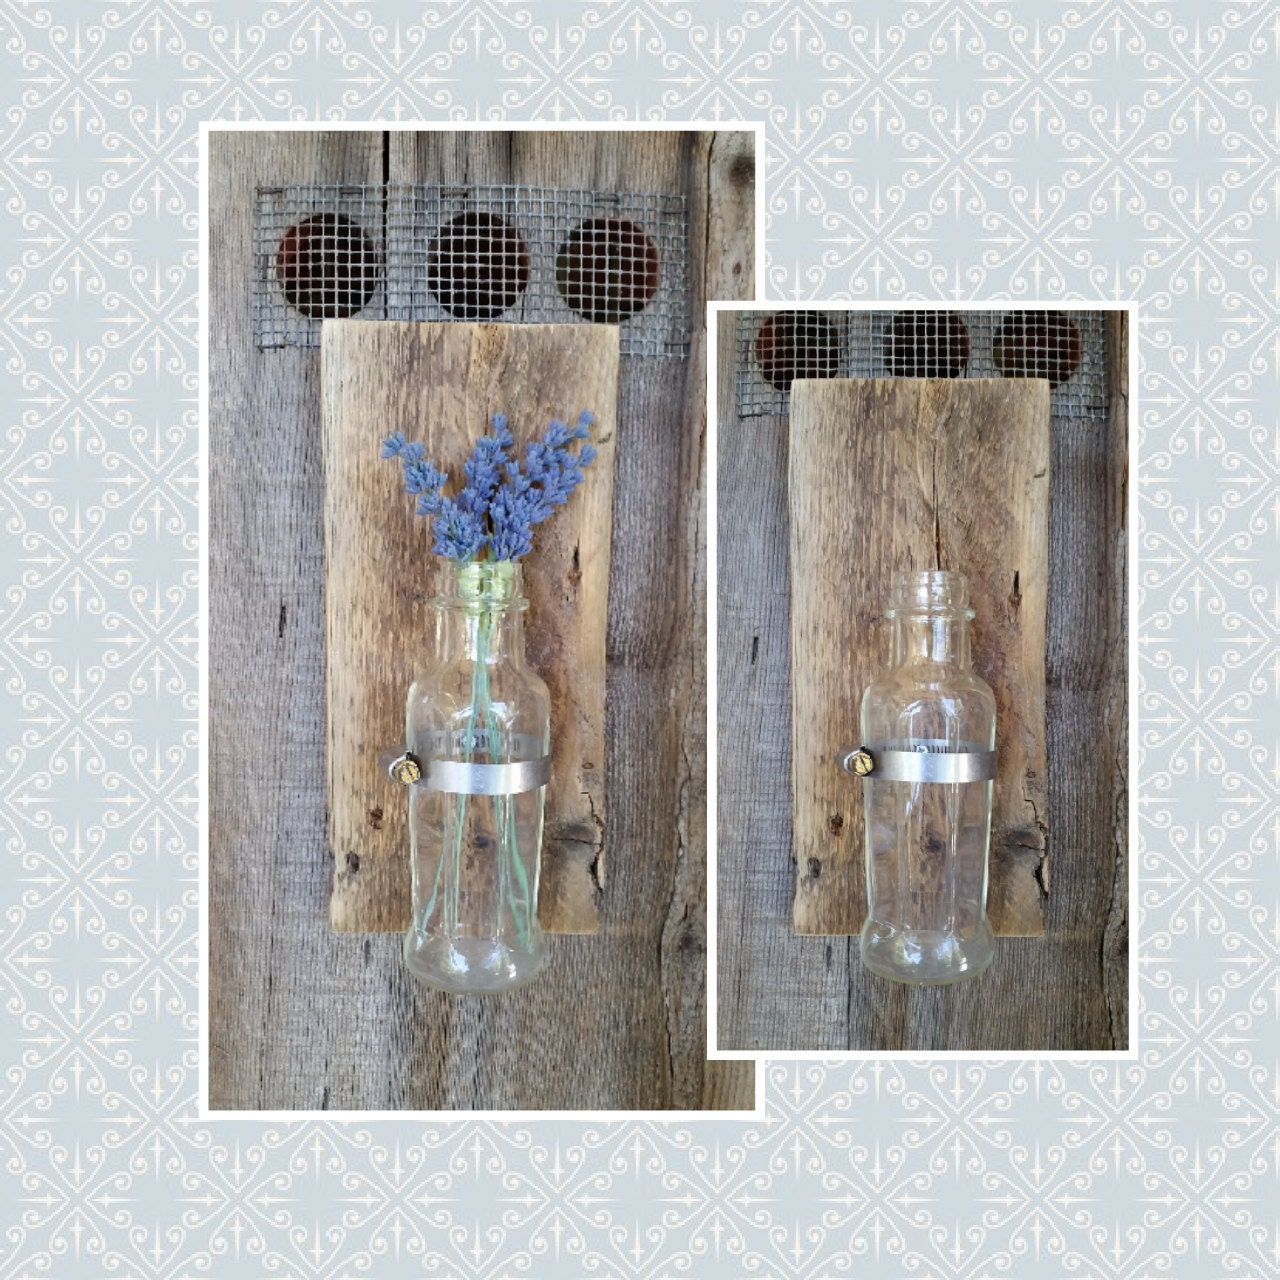 Rustic Wooden Flower Wall Sconce. Vintage glass bottle rustic